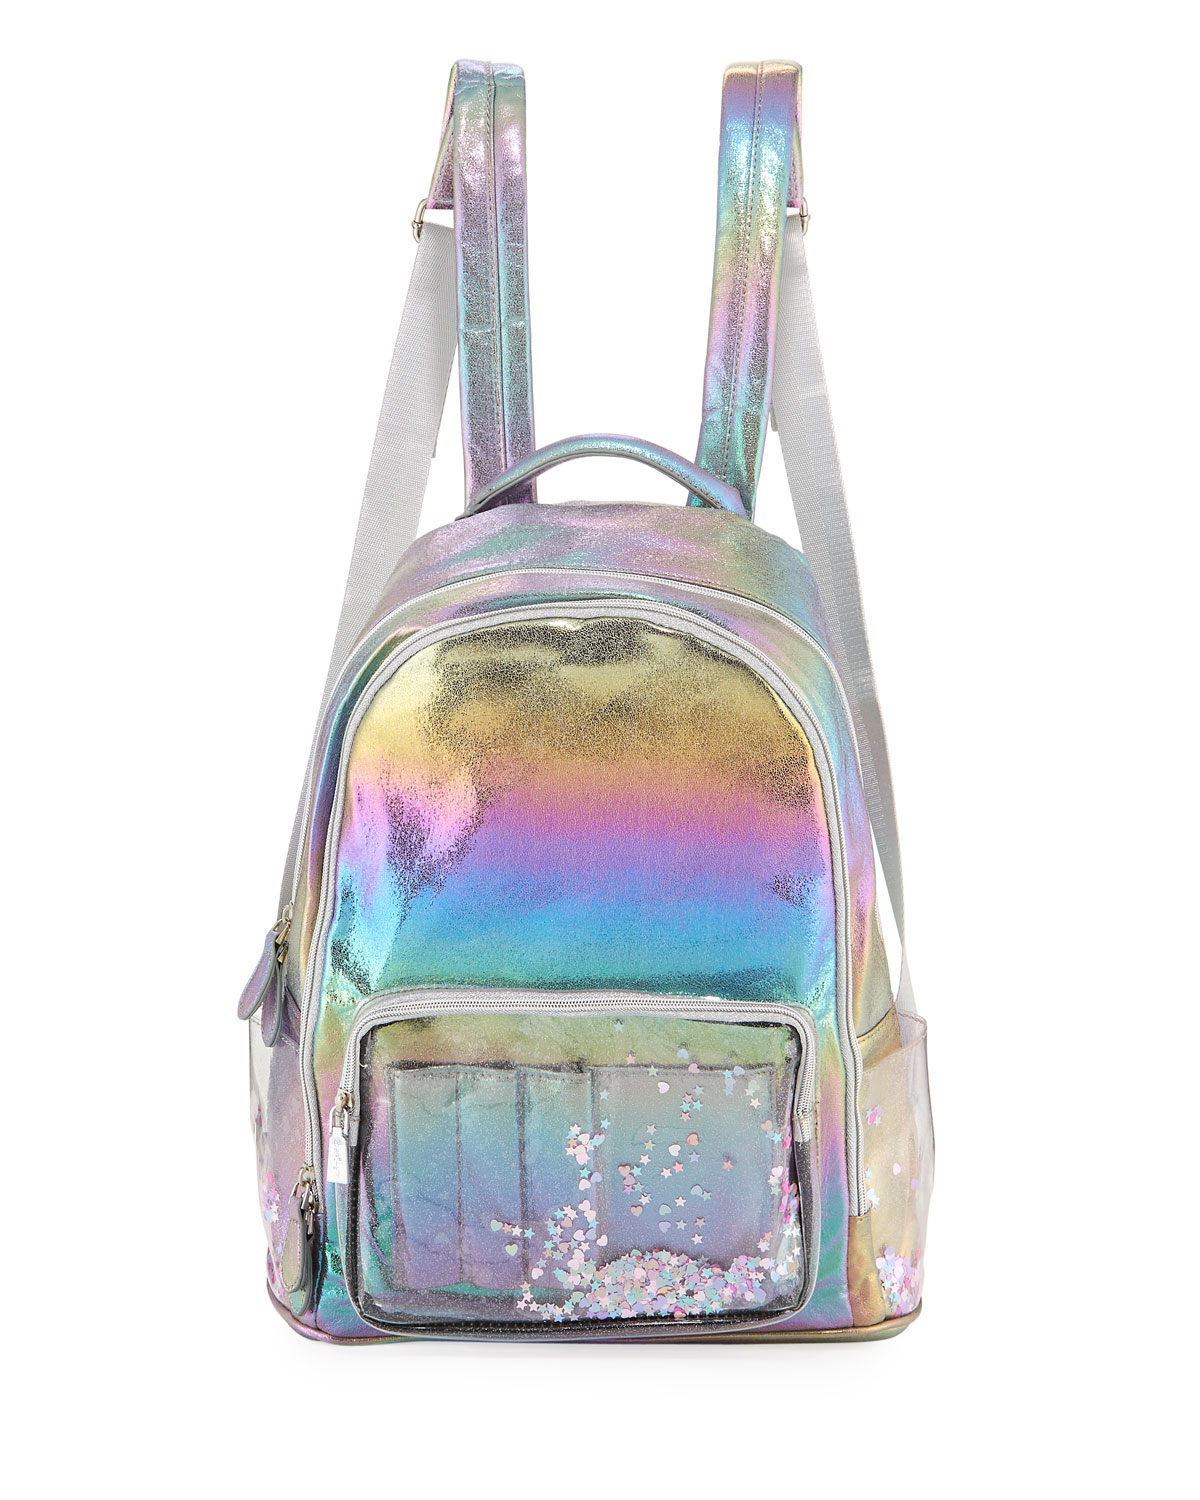 Galaxy Holographic Backpack w/ Floating Heart Confetti Pockets